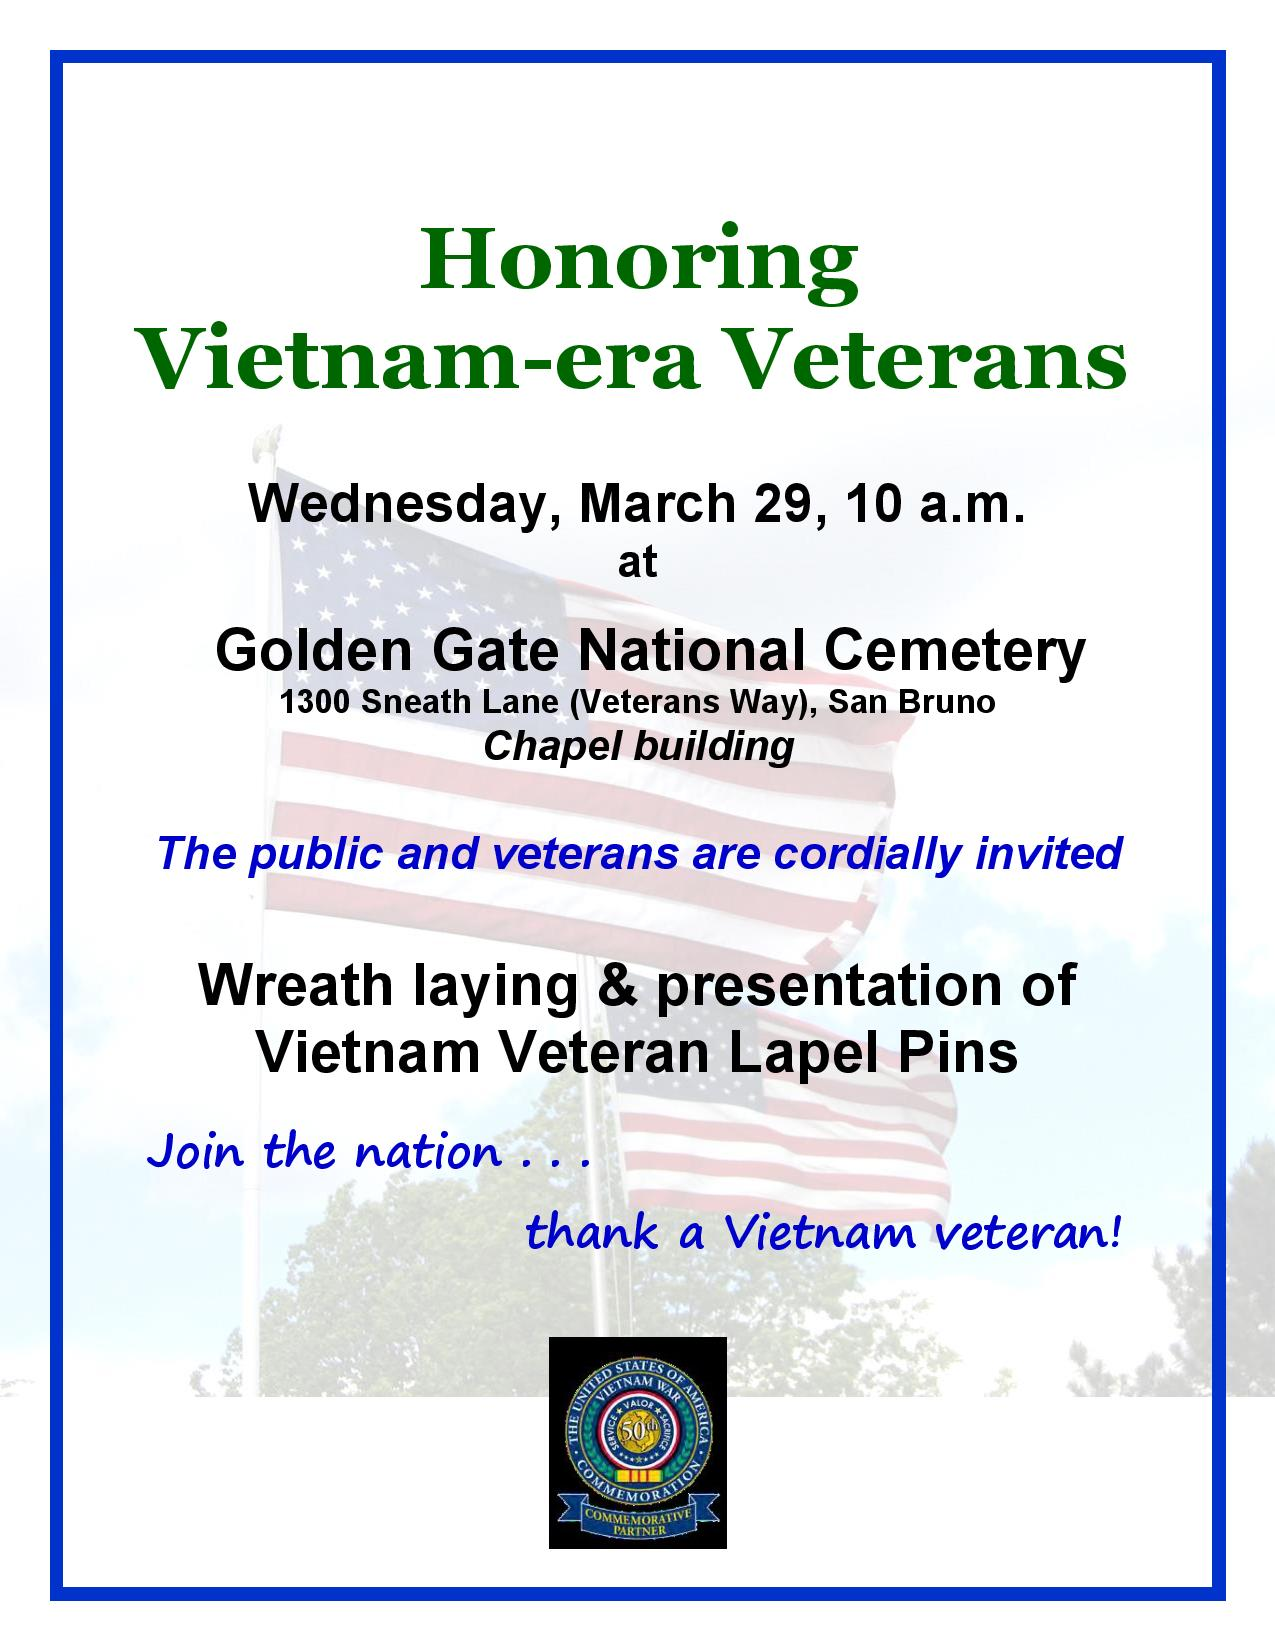 Honoring Vietnam-era Veterans Wednesday March 29th at GGNC